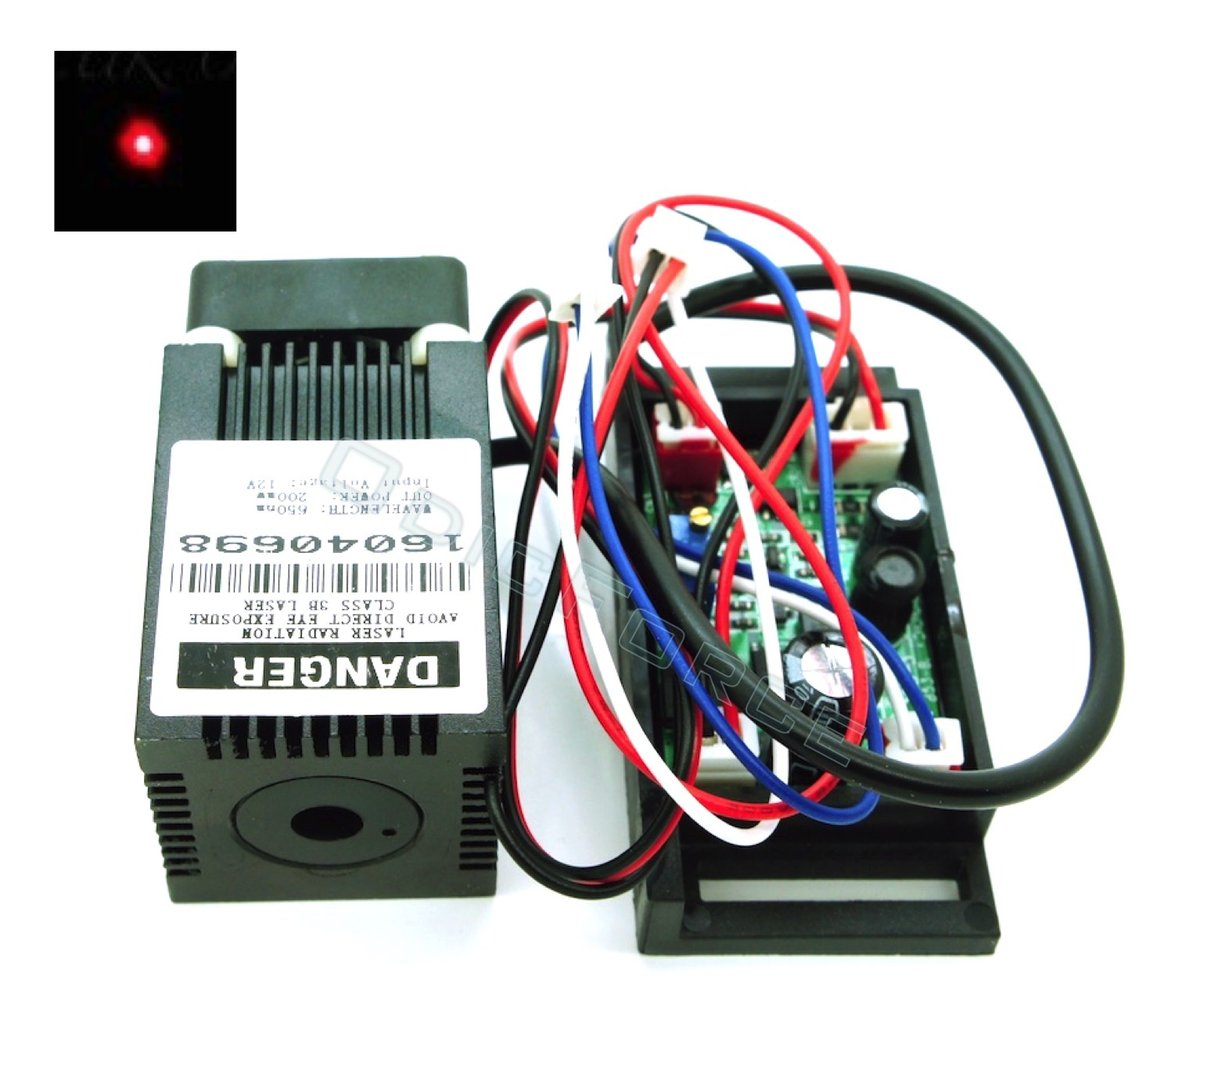 200mW Red (650nm) Laser Diode Module with 12V  TTL Driver Board and Fan Cooling